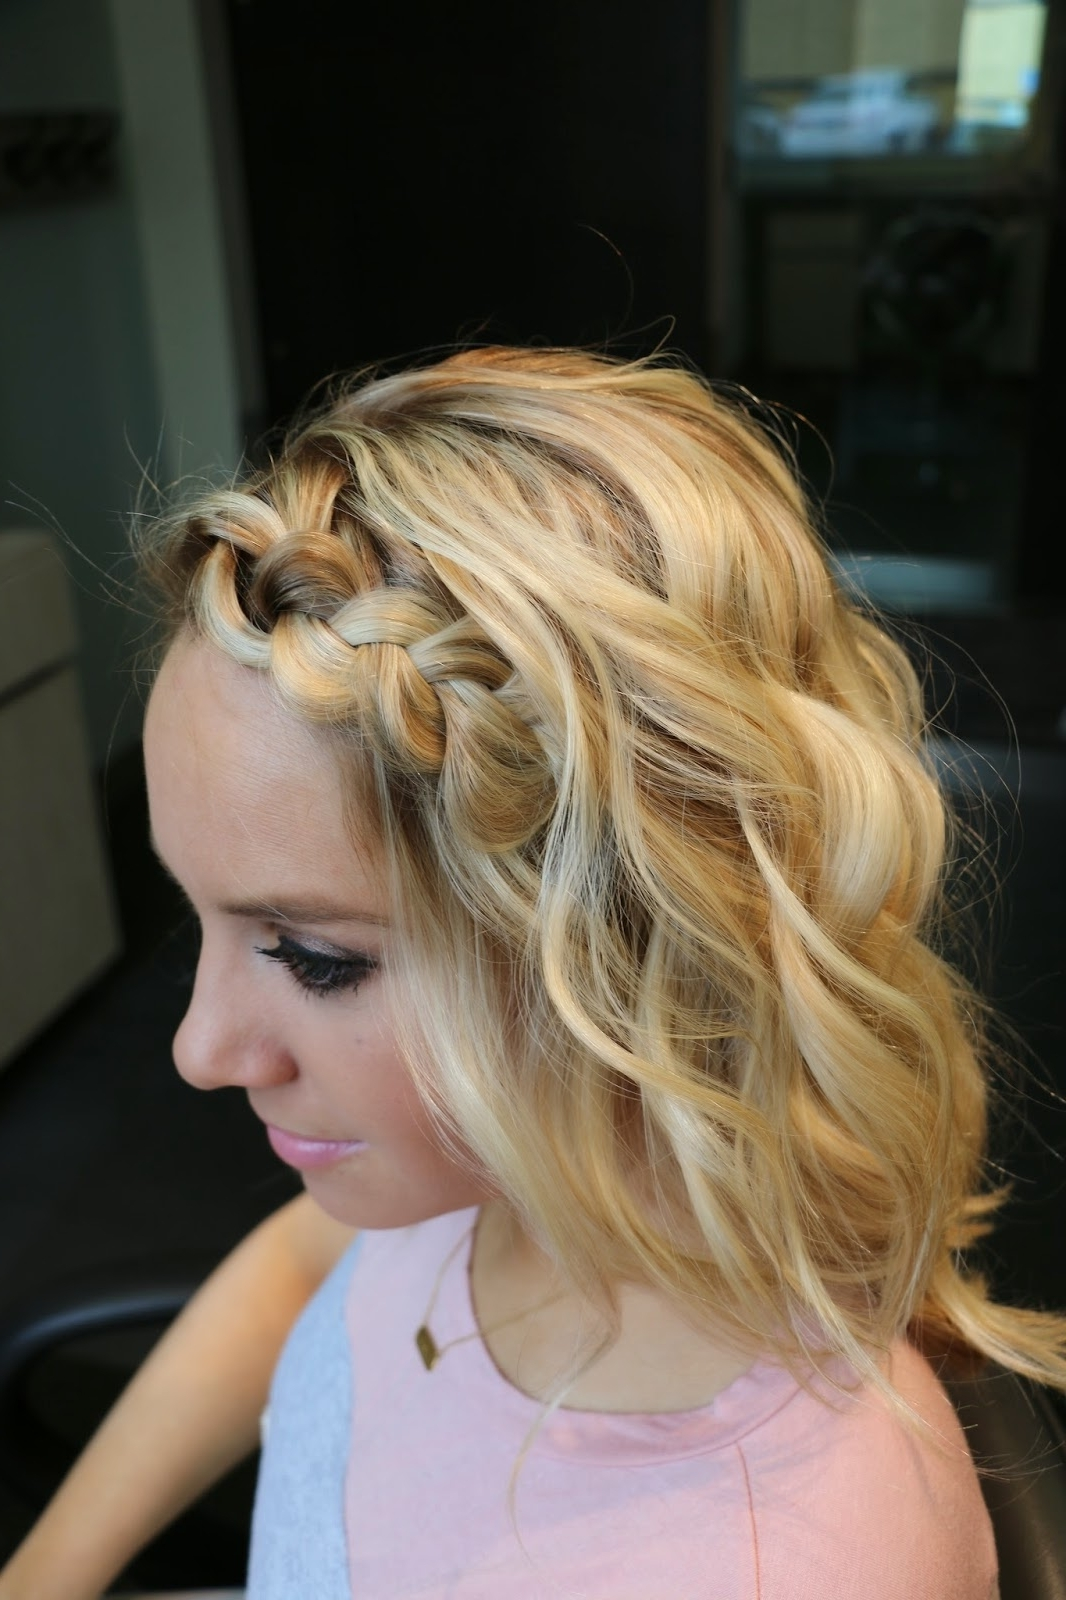 Widely Used Beachy Braids Hairstyles Throughout Stylin In St. Louis: Beachy Waves And Braids Tutorial + A Giveaway… (View 18 of 20)